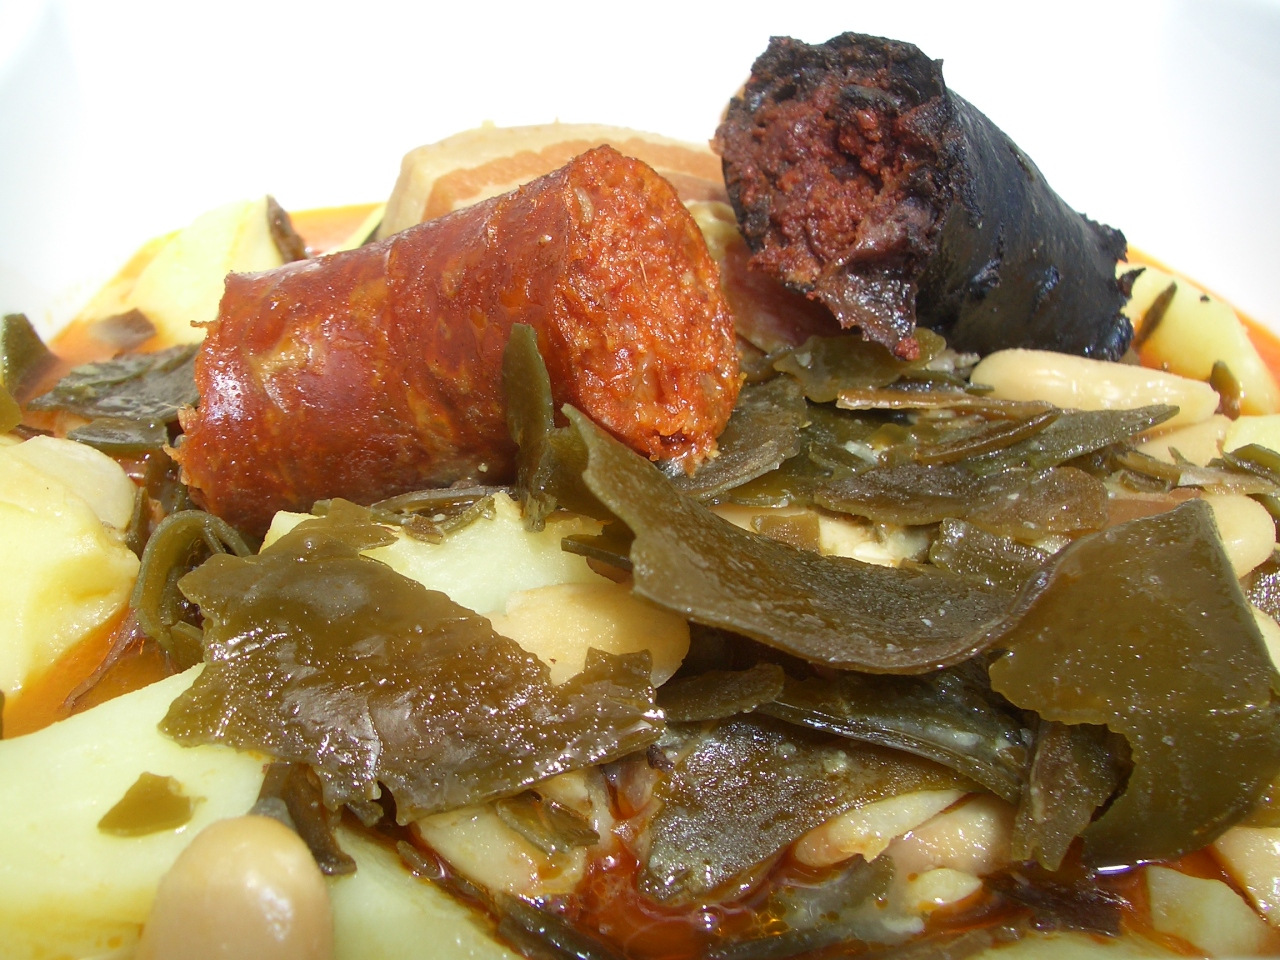 Pote Asturiano con Algas – Asturian Bean, Potato and Algae Stew